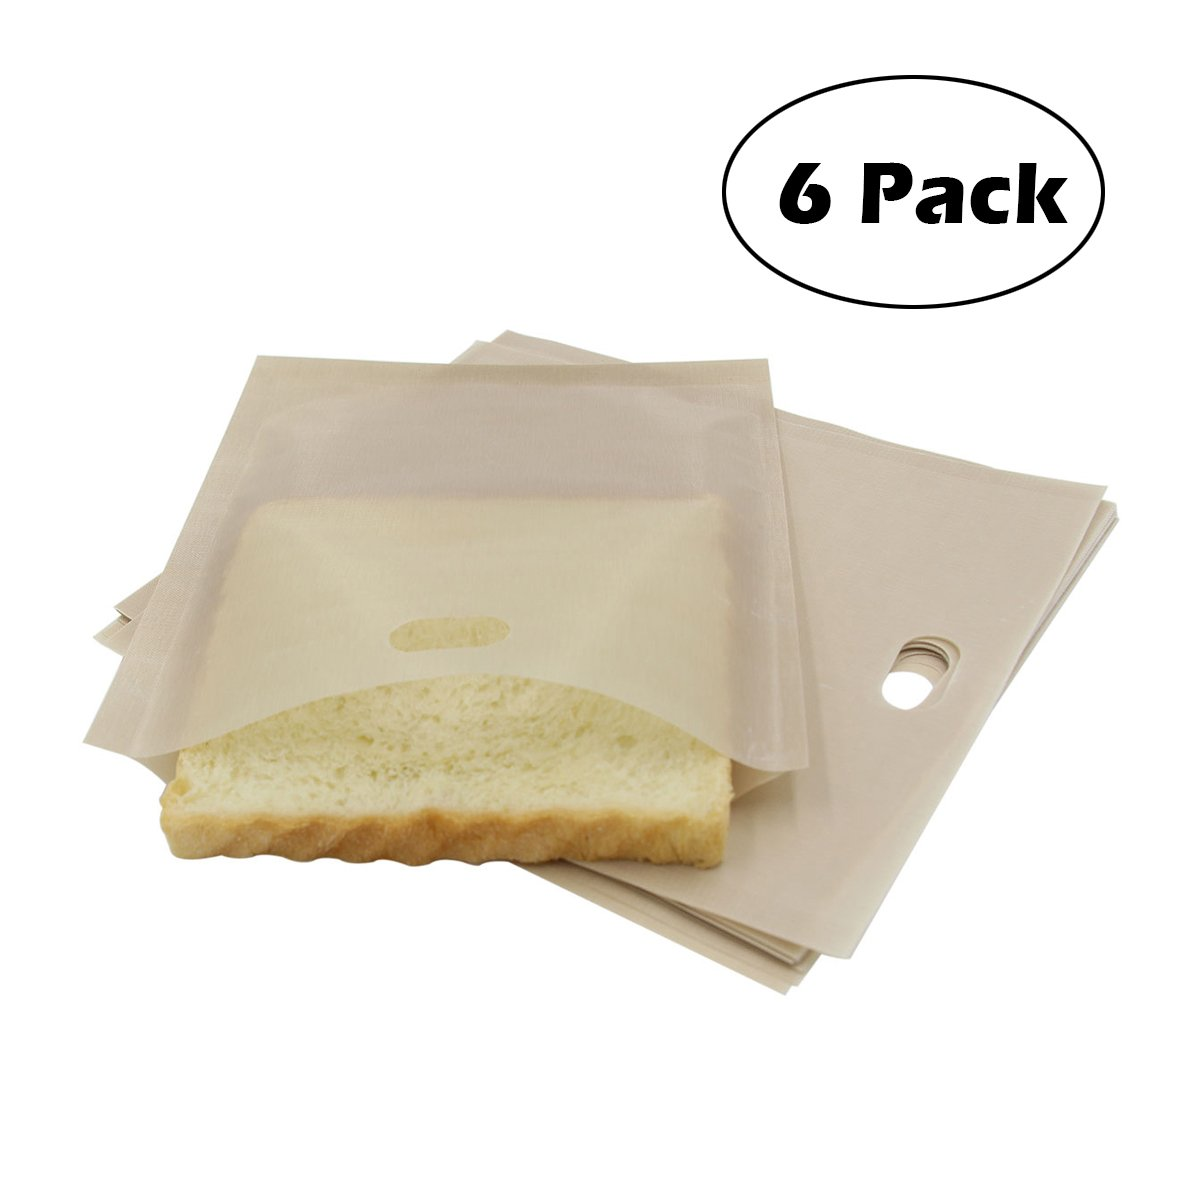 Grilled Cheese Toaster Bags Reusable Non Stick School Snack Bag for Grilling Pizza Sandwiches (Pack of 6) Fun.U Technology Co. Ltd